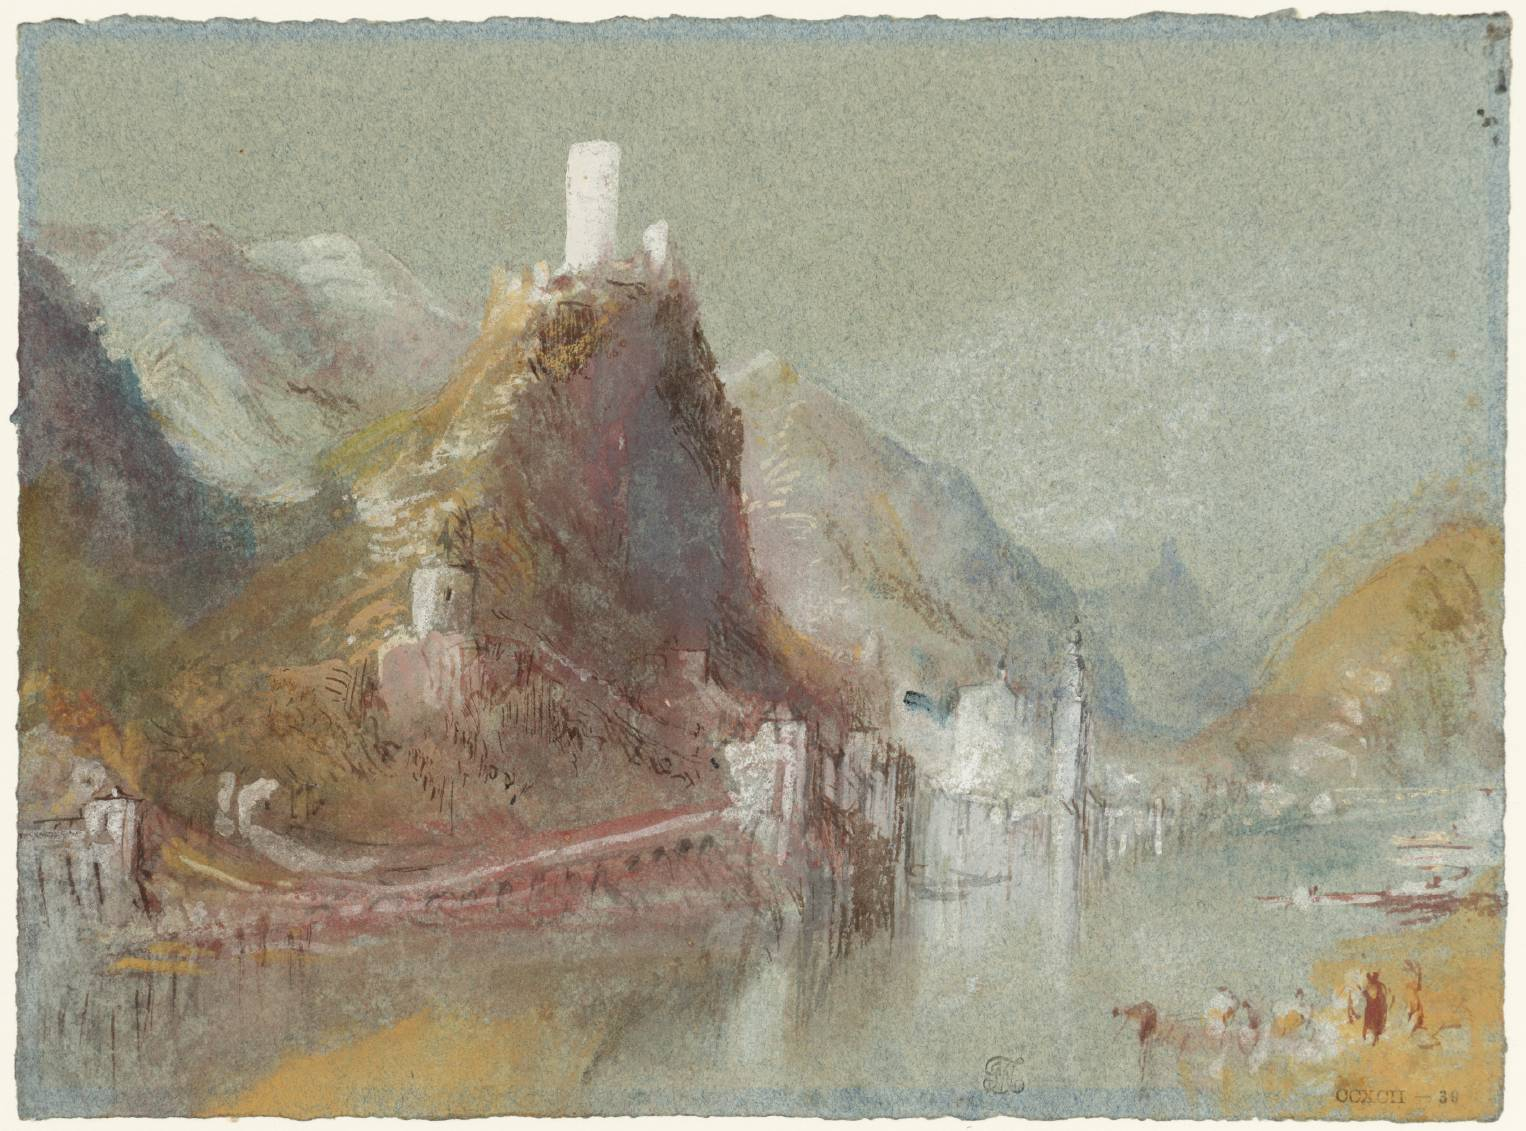 historia-técnica-acuarela-william-turner-cochem-del-sur